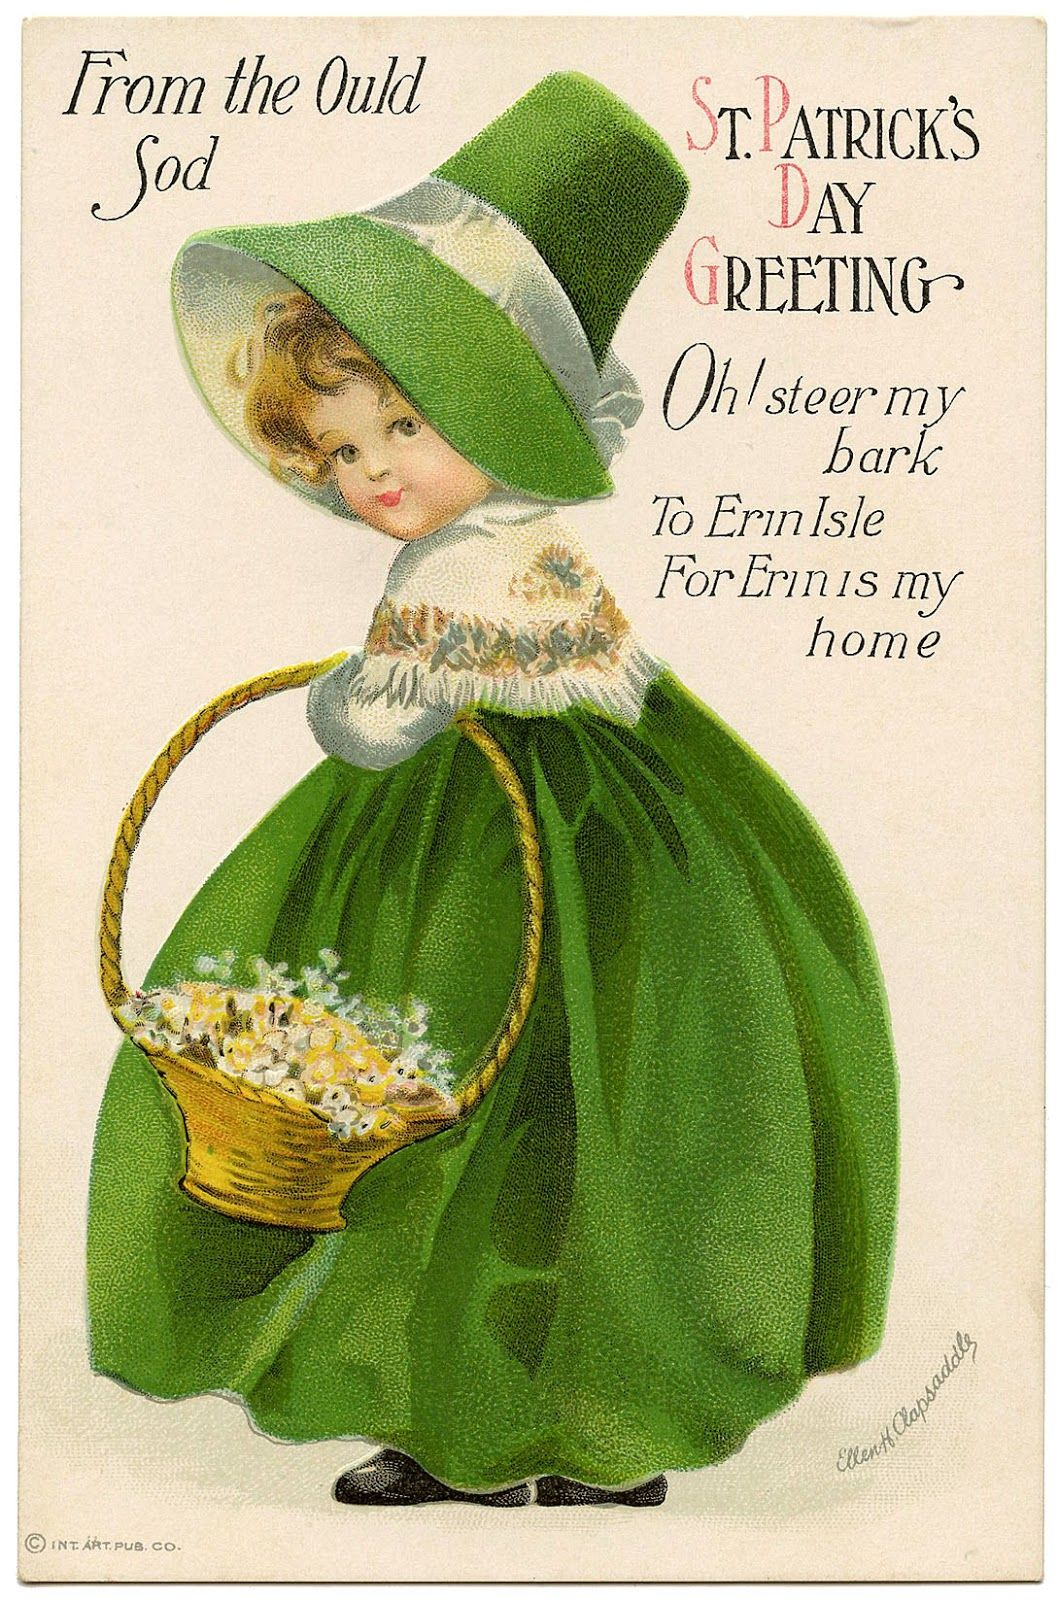 Vintage St Patricks Day Greetings Pictures Photos And Images For